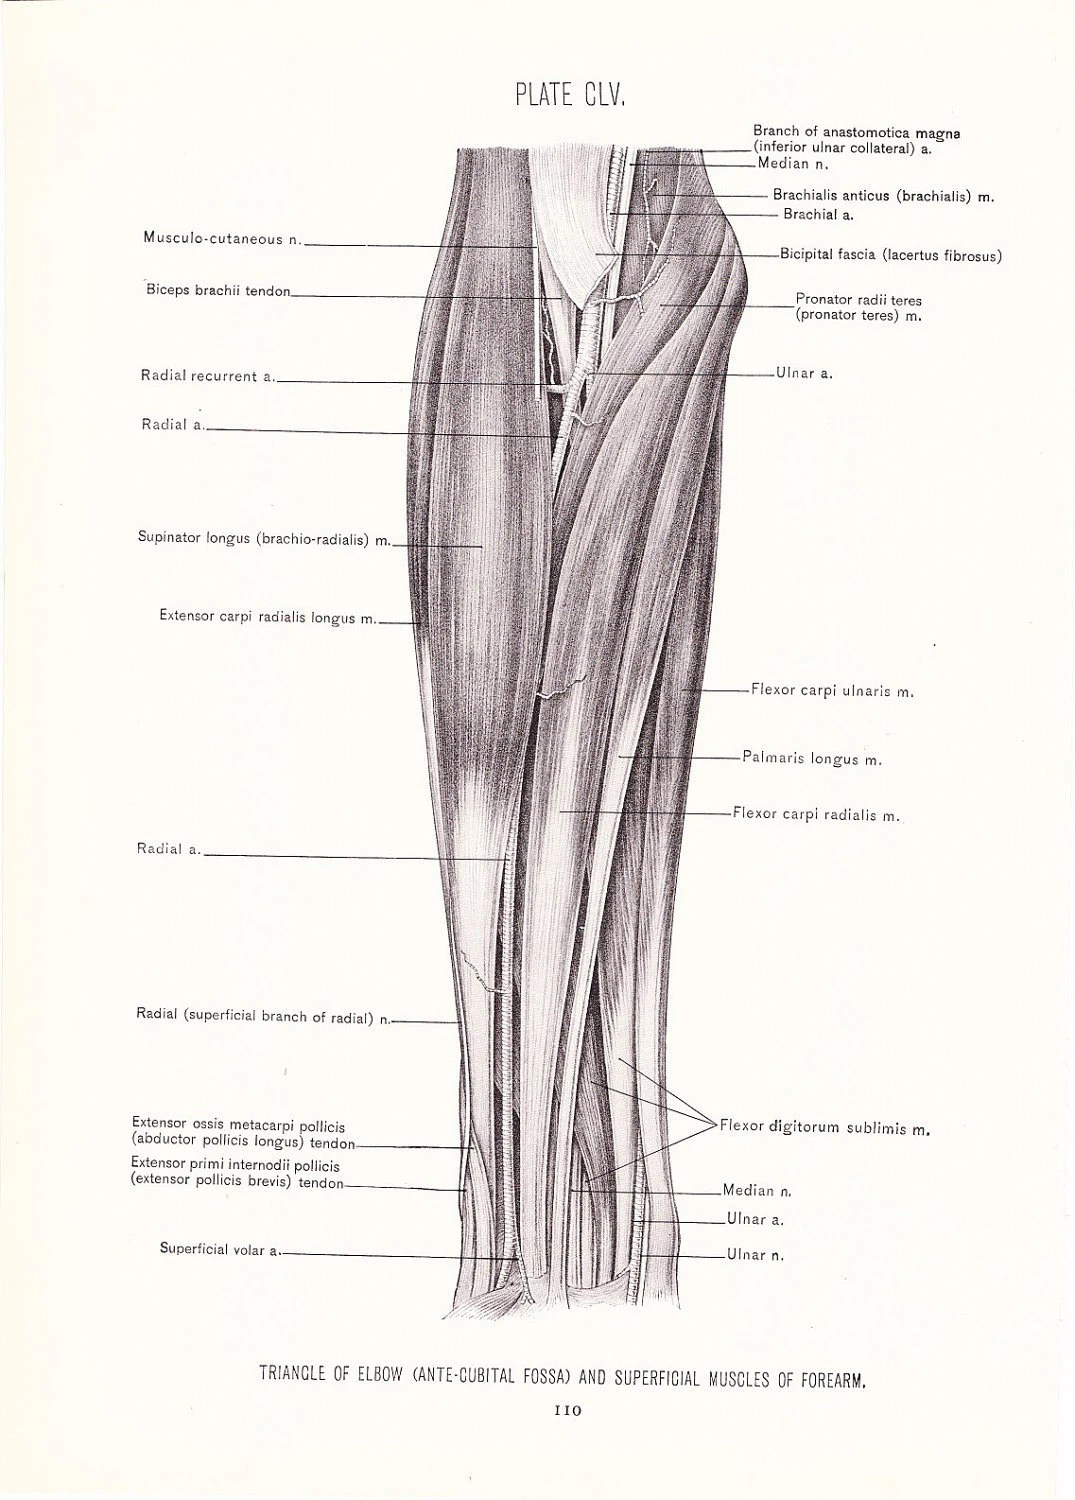 1926 Human Anatomy Print Triangle Elbow Superficial Muscles